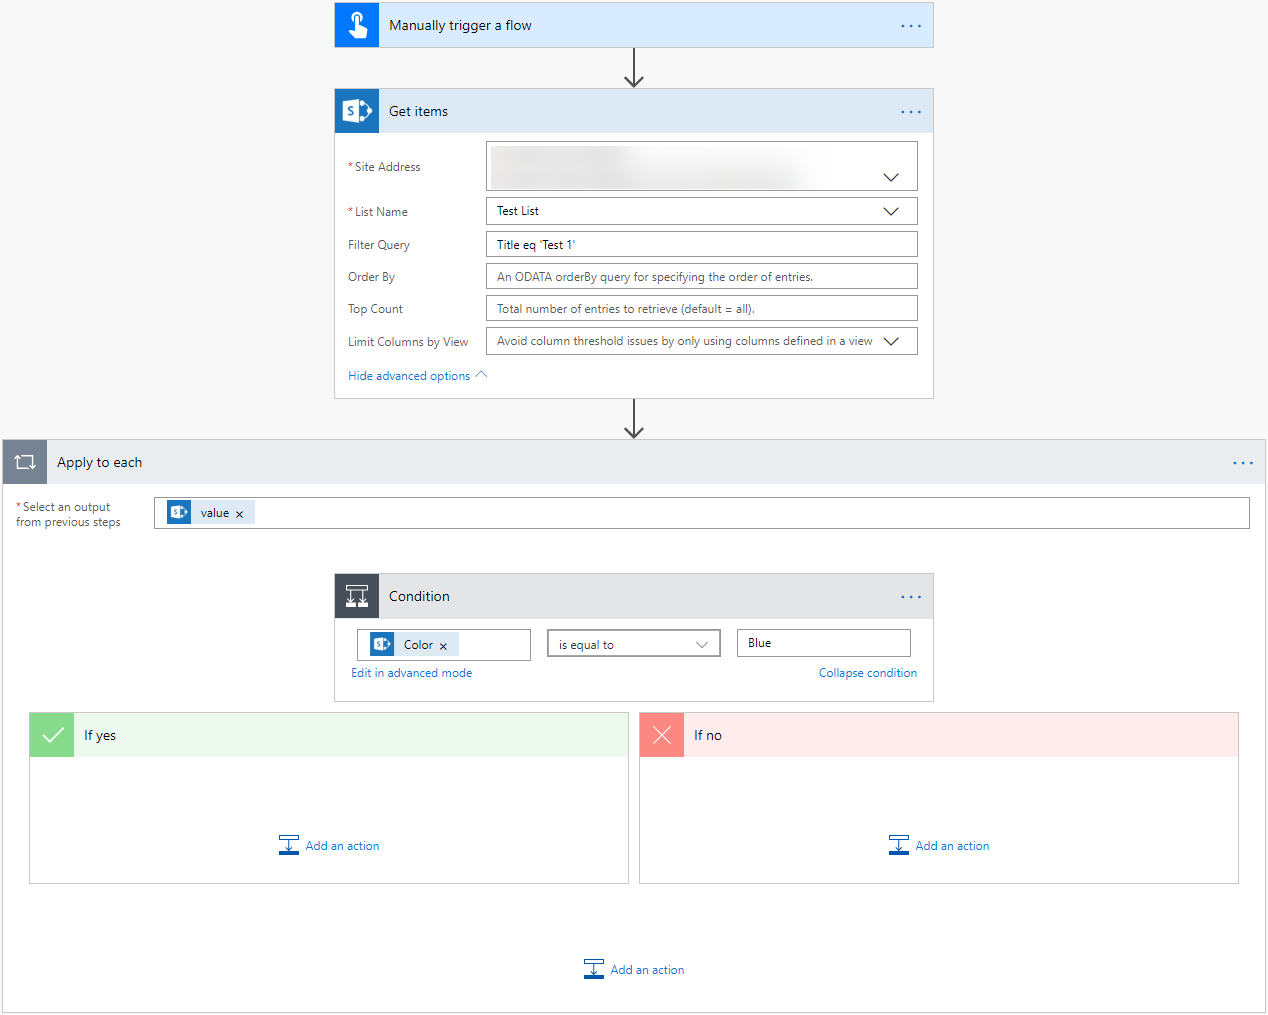 Microsoft Flow - 2 methods to not use Apply to Each action